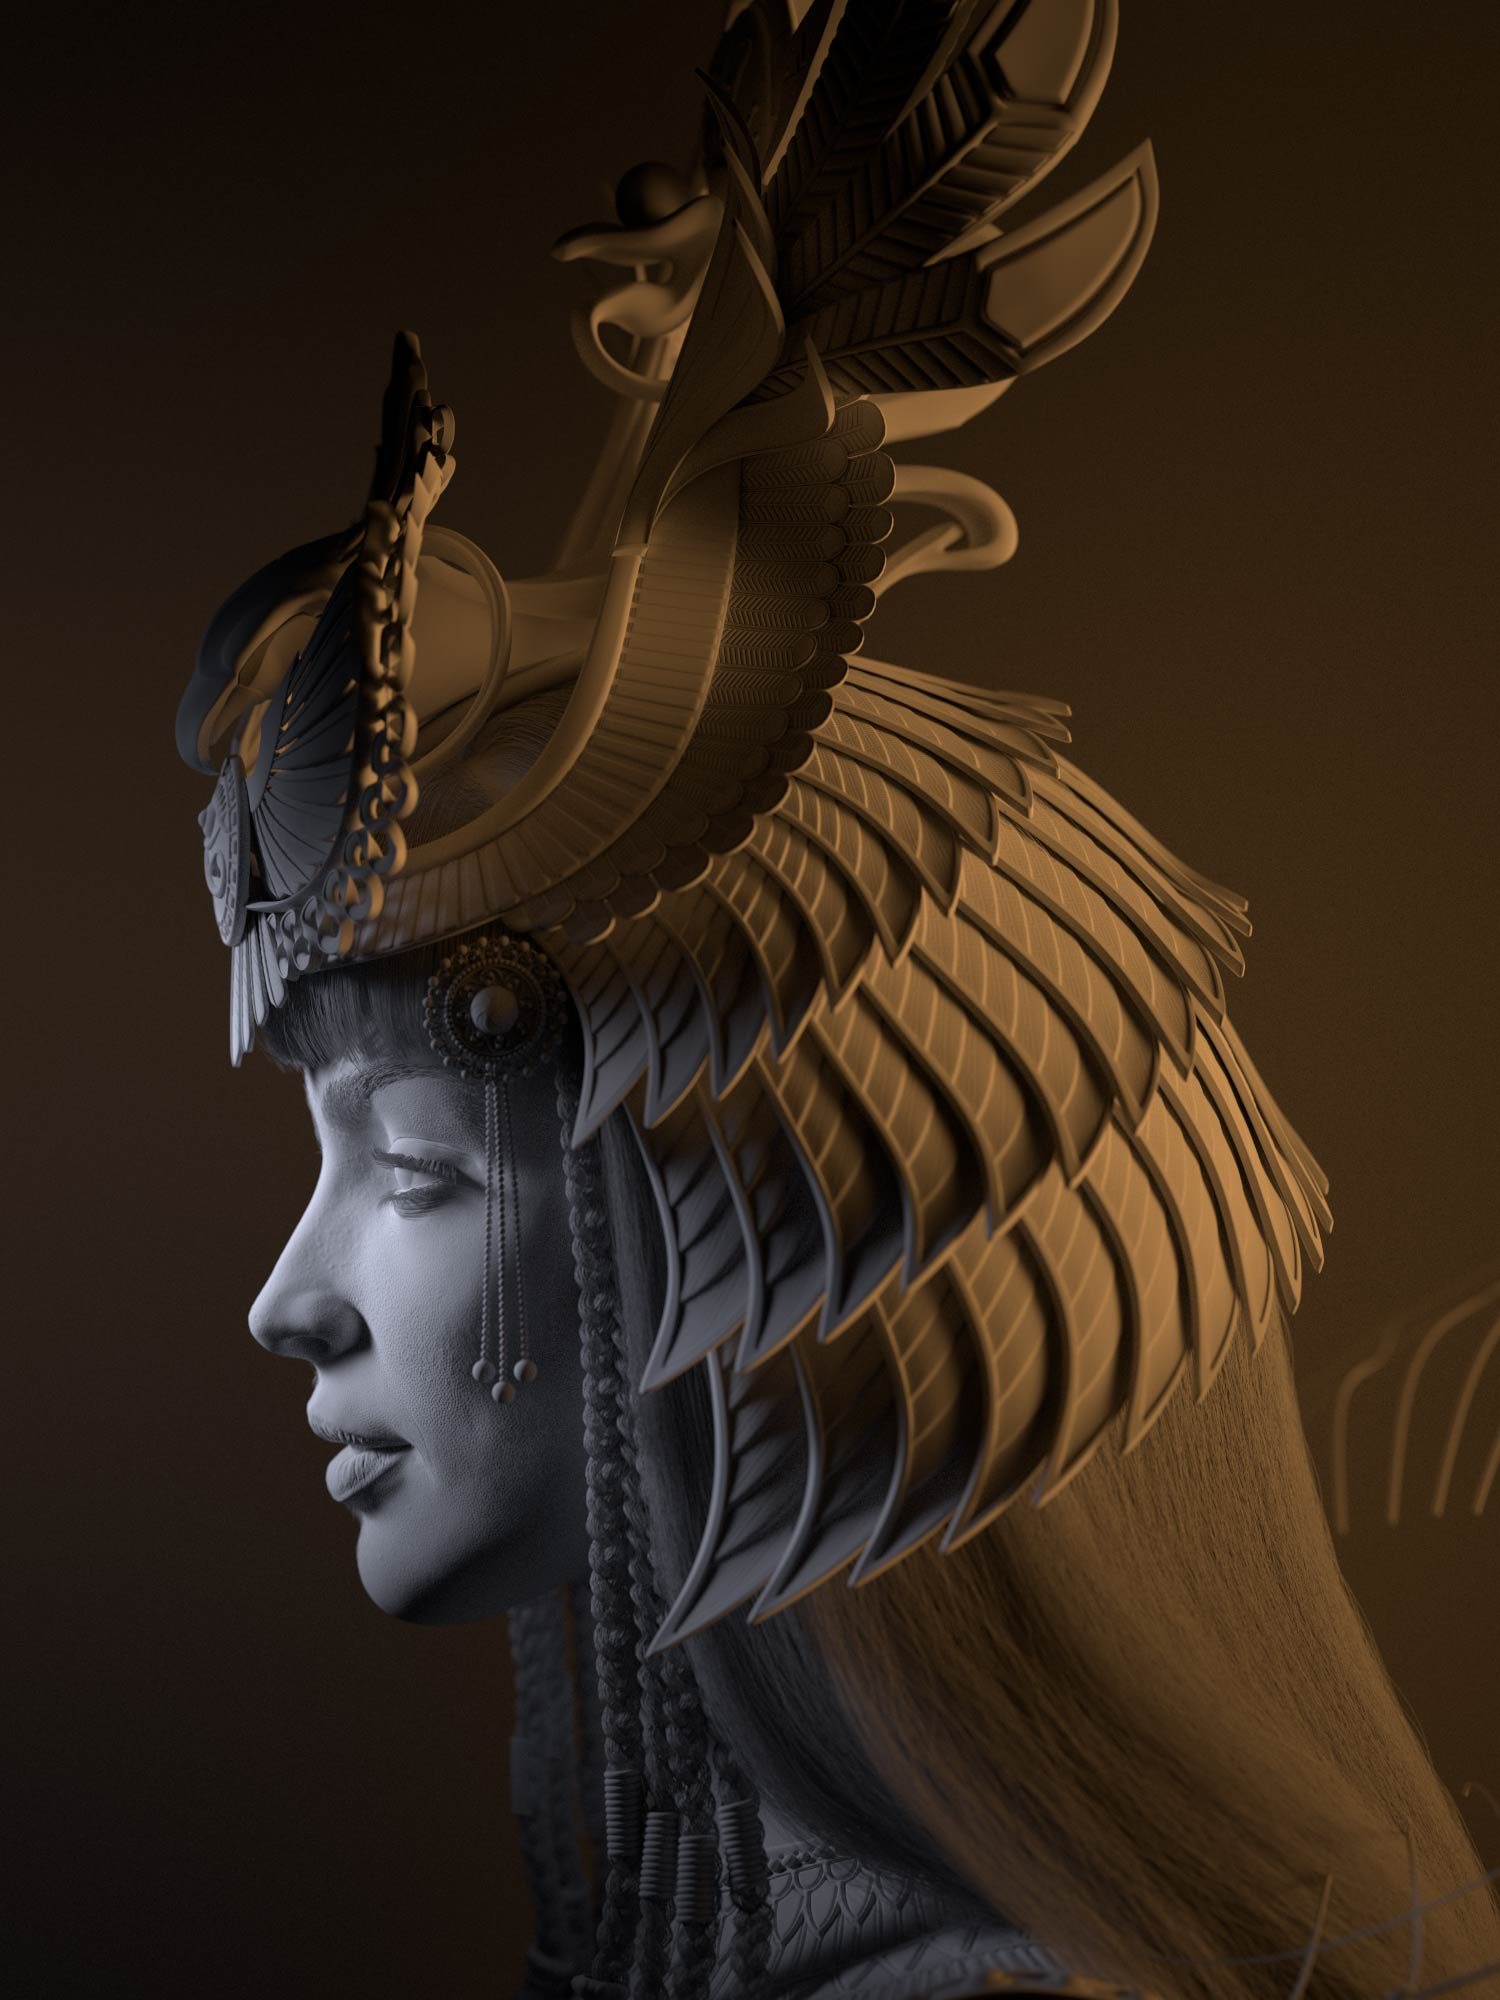 cleopatra_3d_lighting_side_view_digital_csulpting Cleopatra CG Character